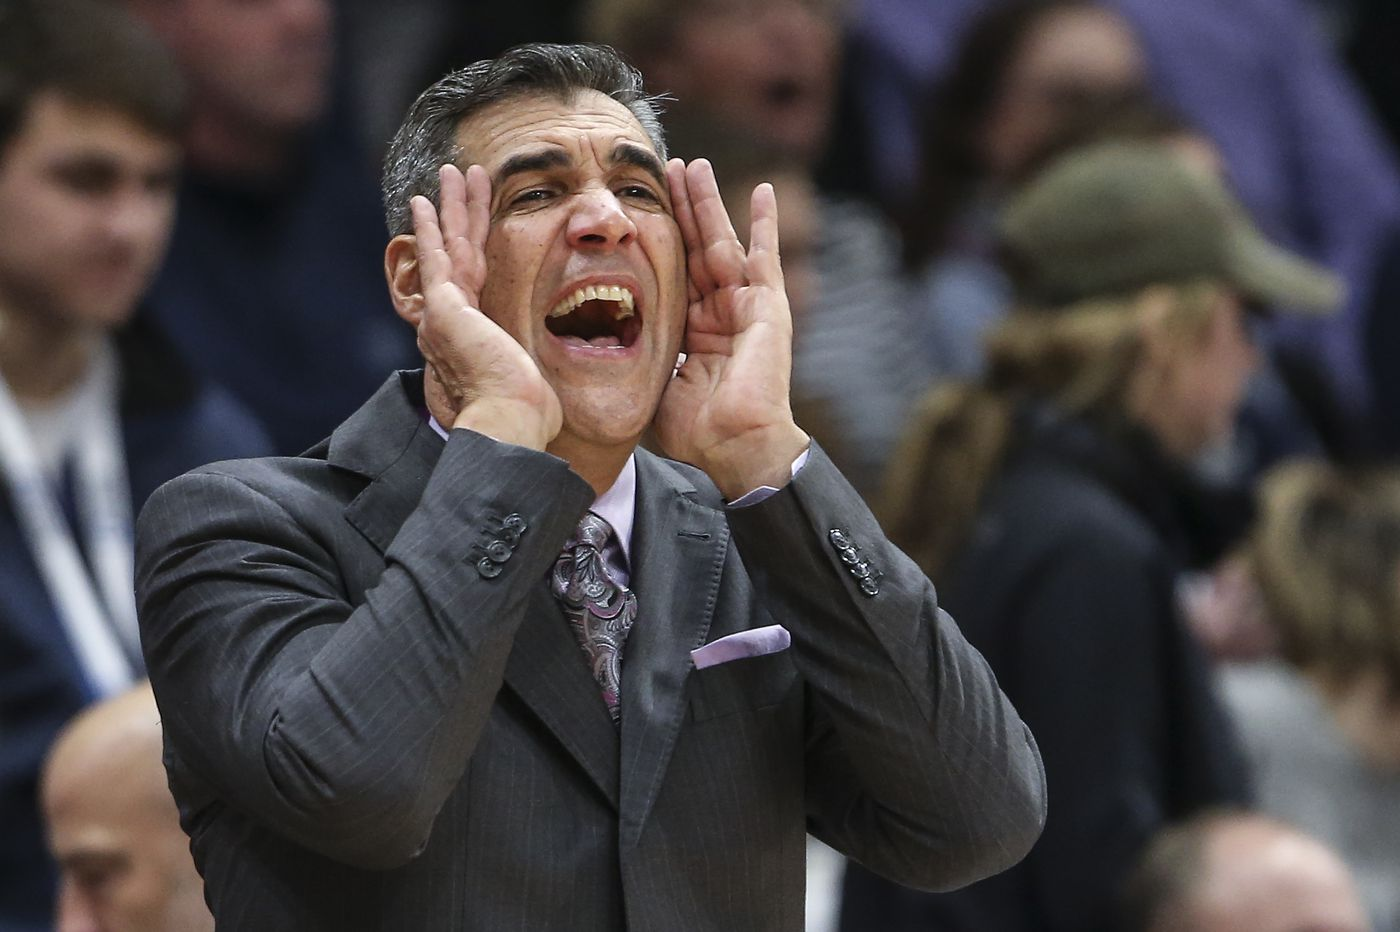 With this year's Villanova team, it's best not to make assumptions | Mike Jensen